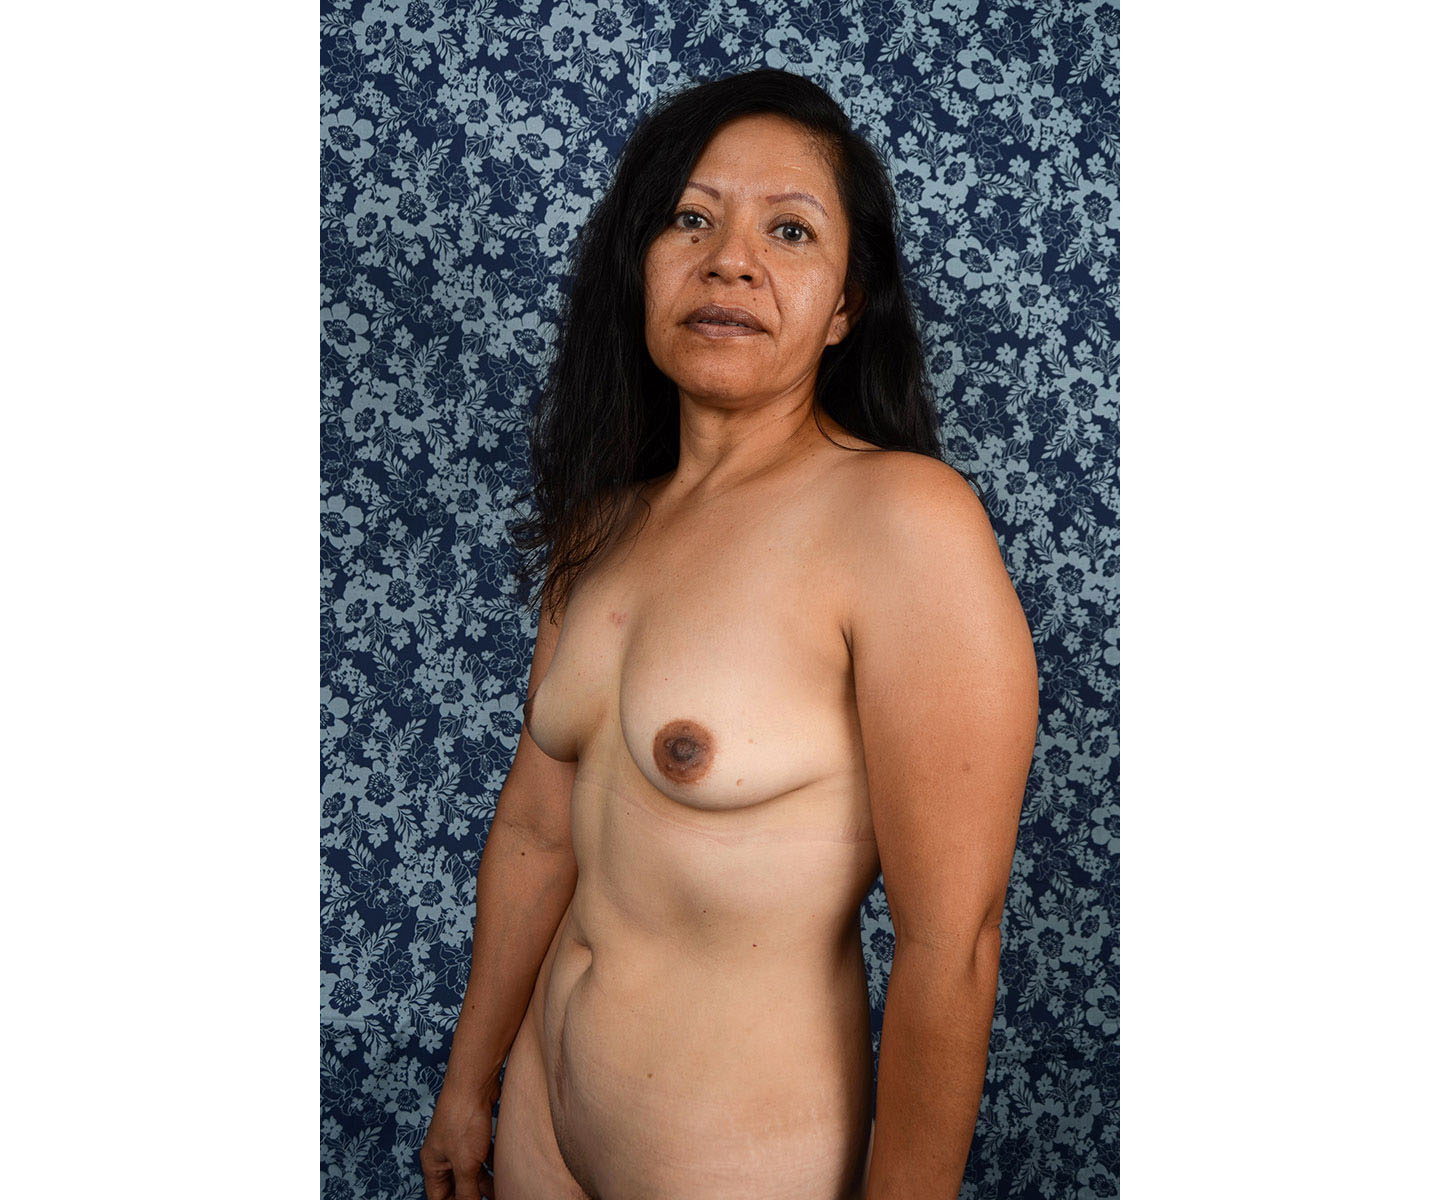 Natural Bodies, a portrait project from Olivia Peregrino